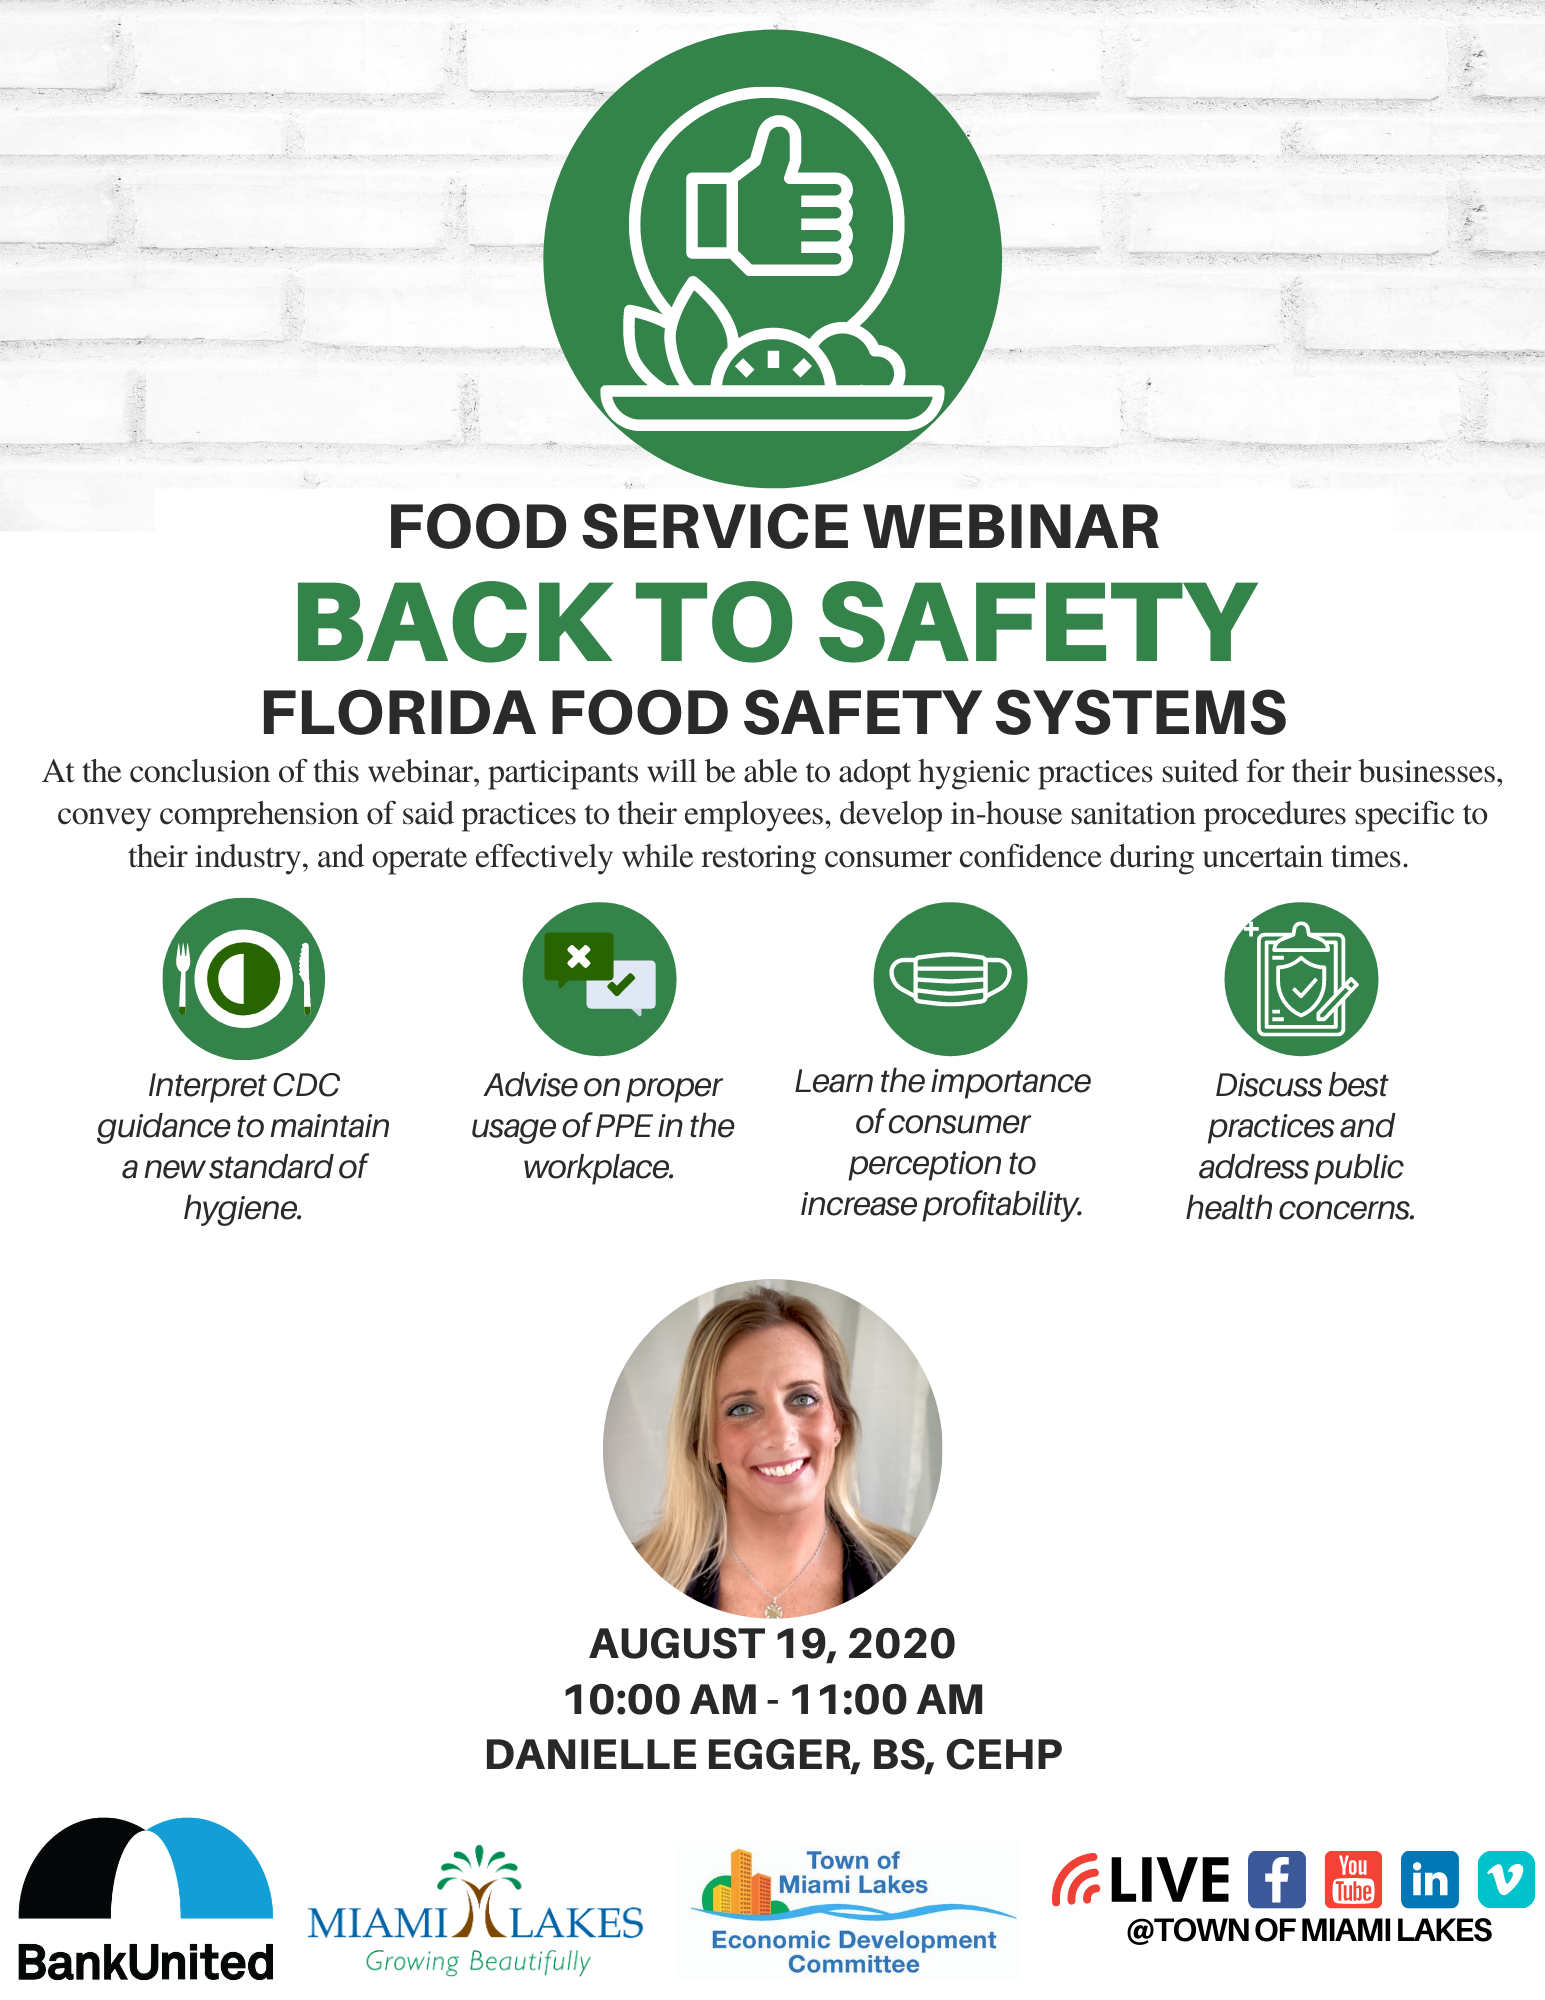 Back to Safety Webinar Flyer